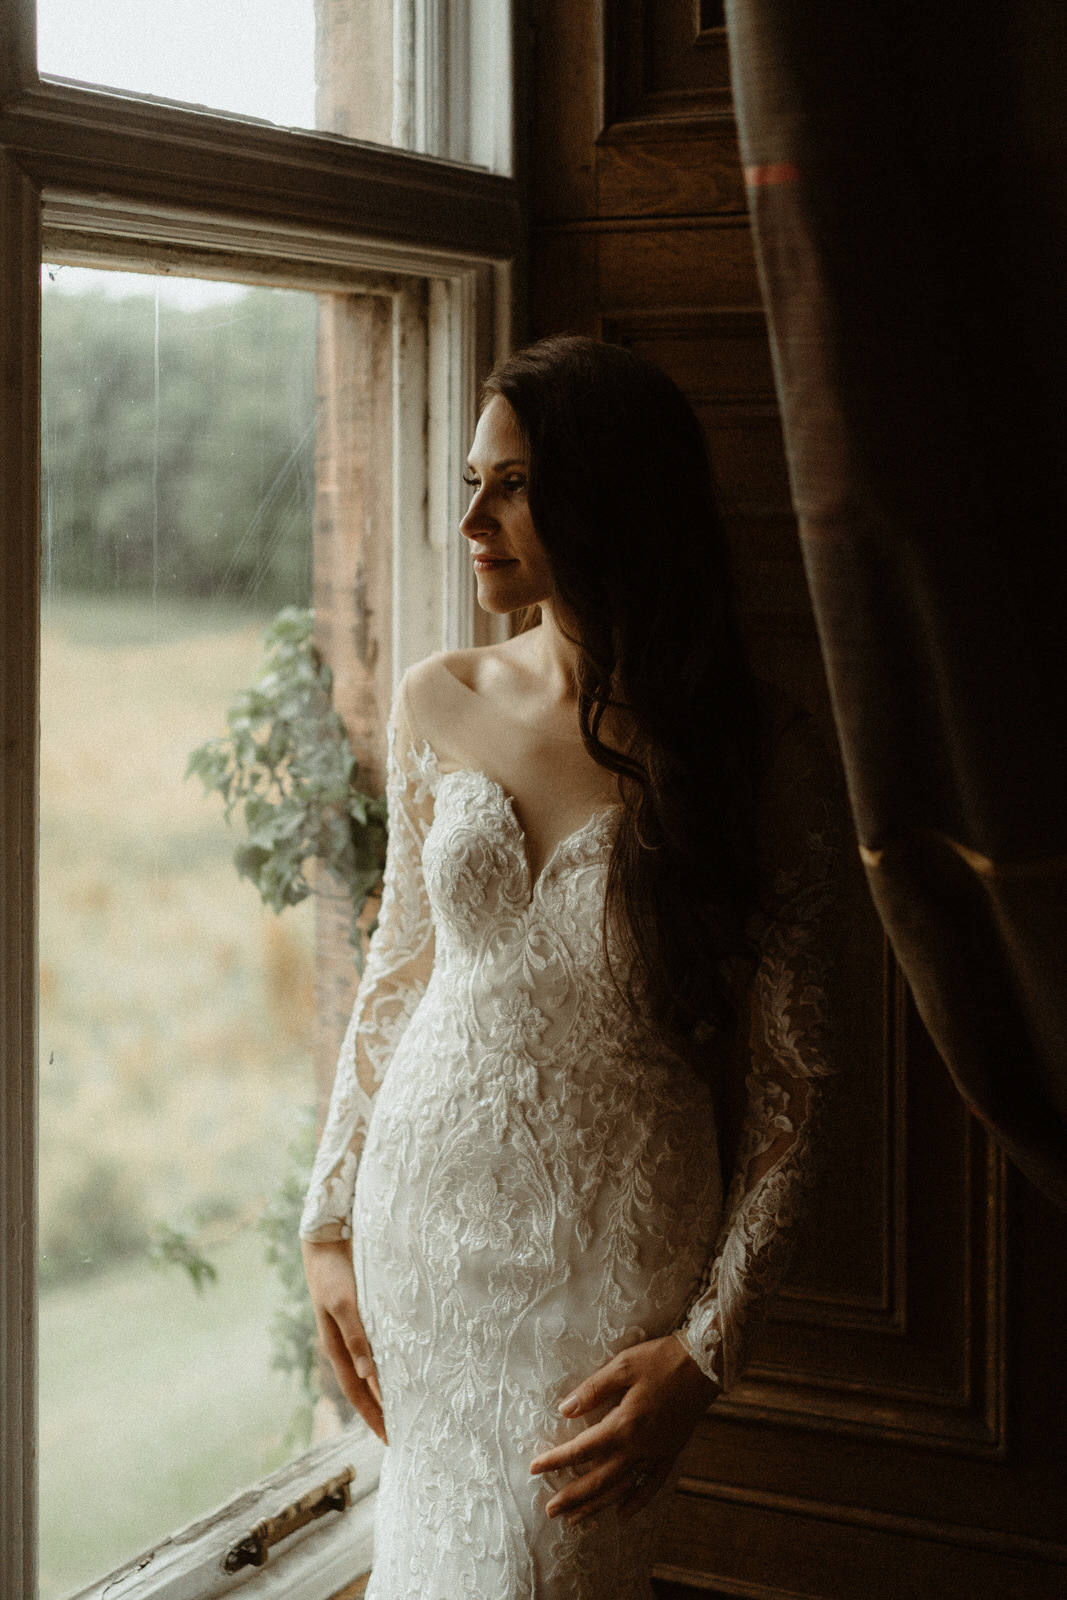 Anomalie bride wearing a dress with sheer long sleeves.